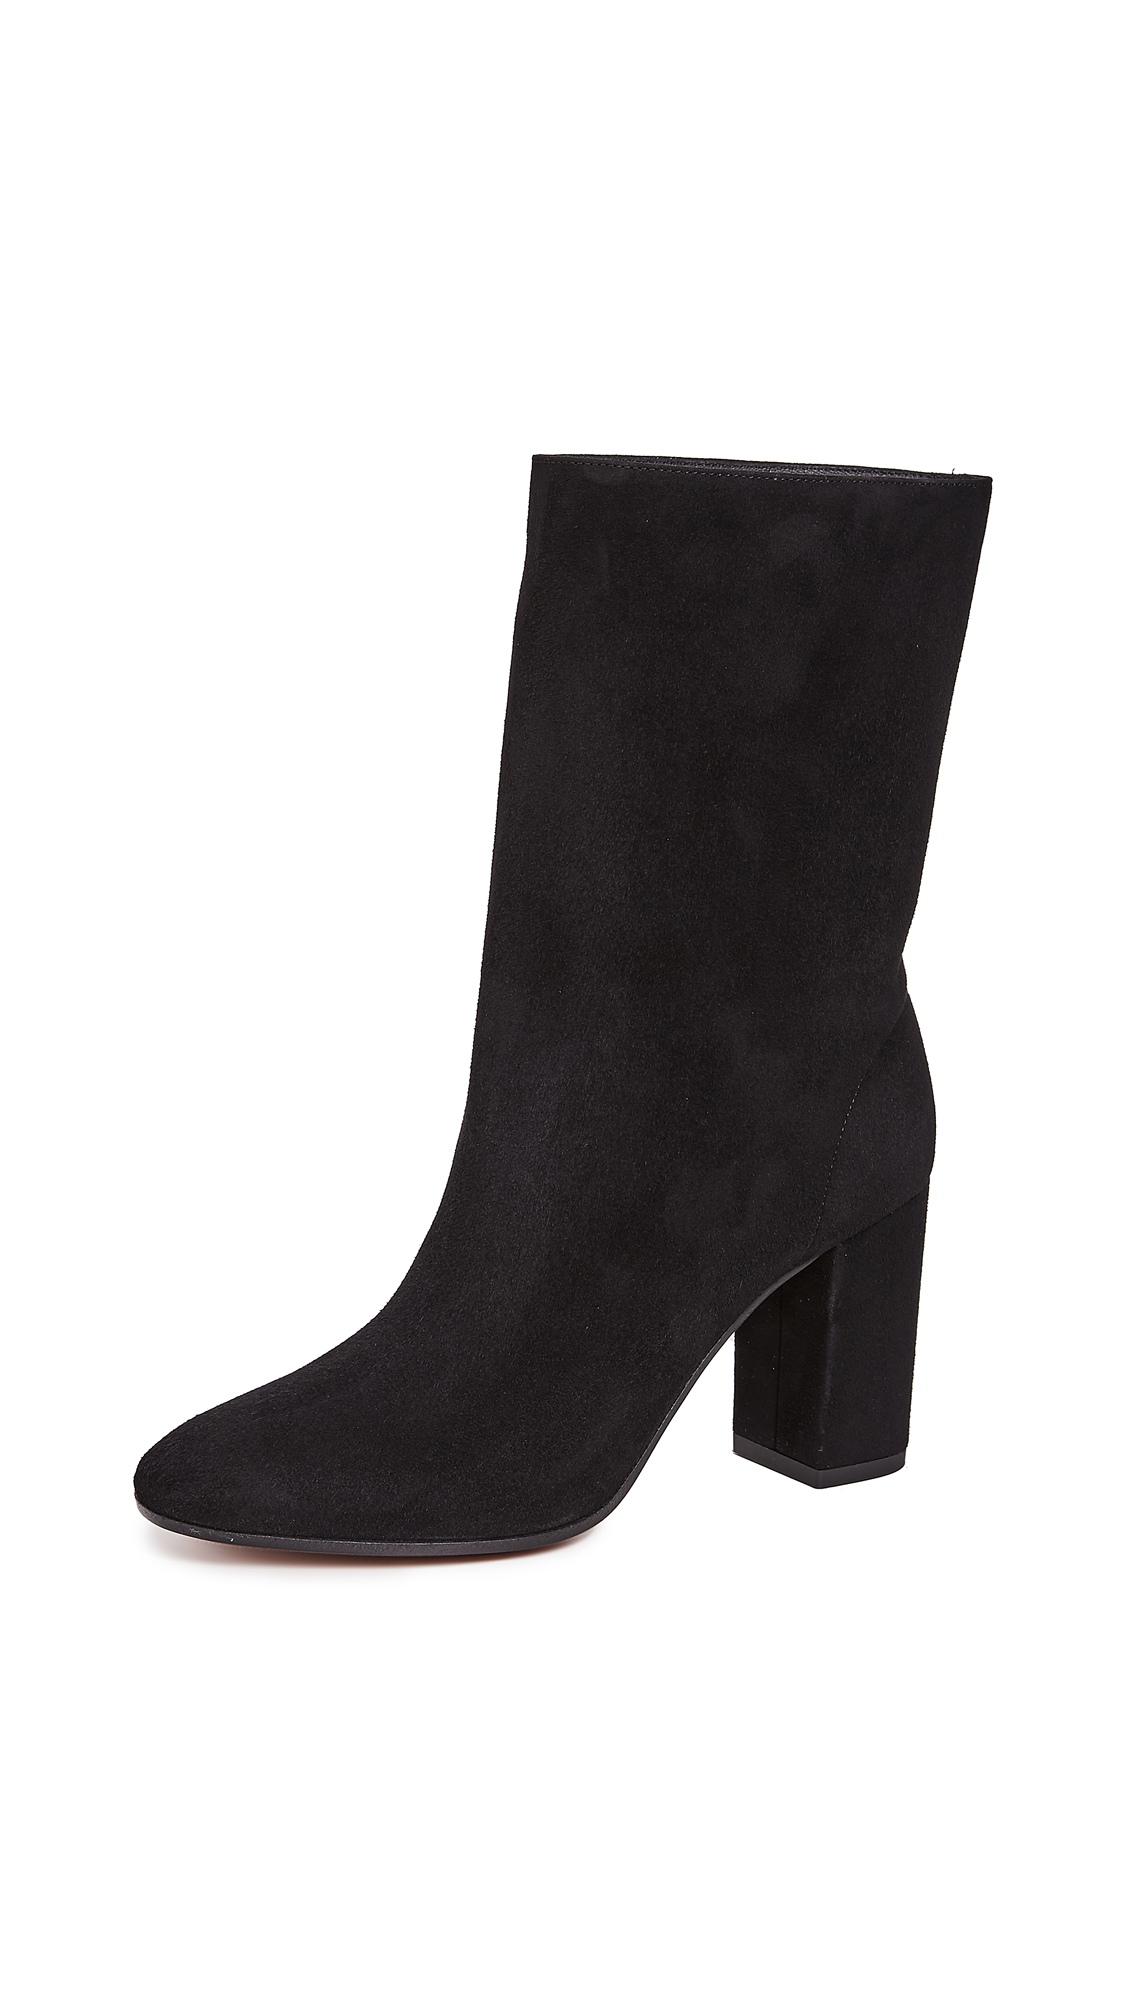 Aquazzura Boogie 85 Booties - Black